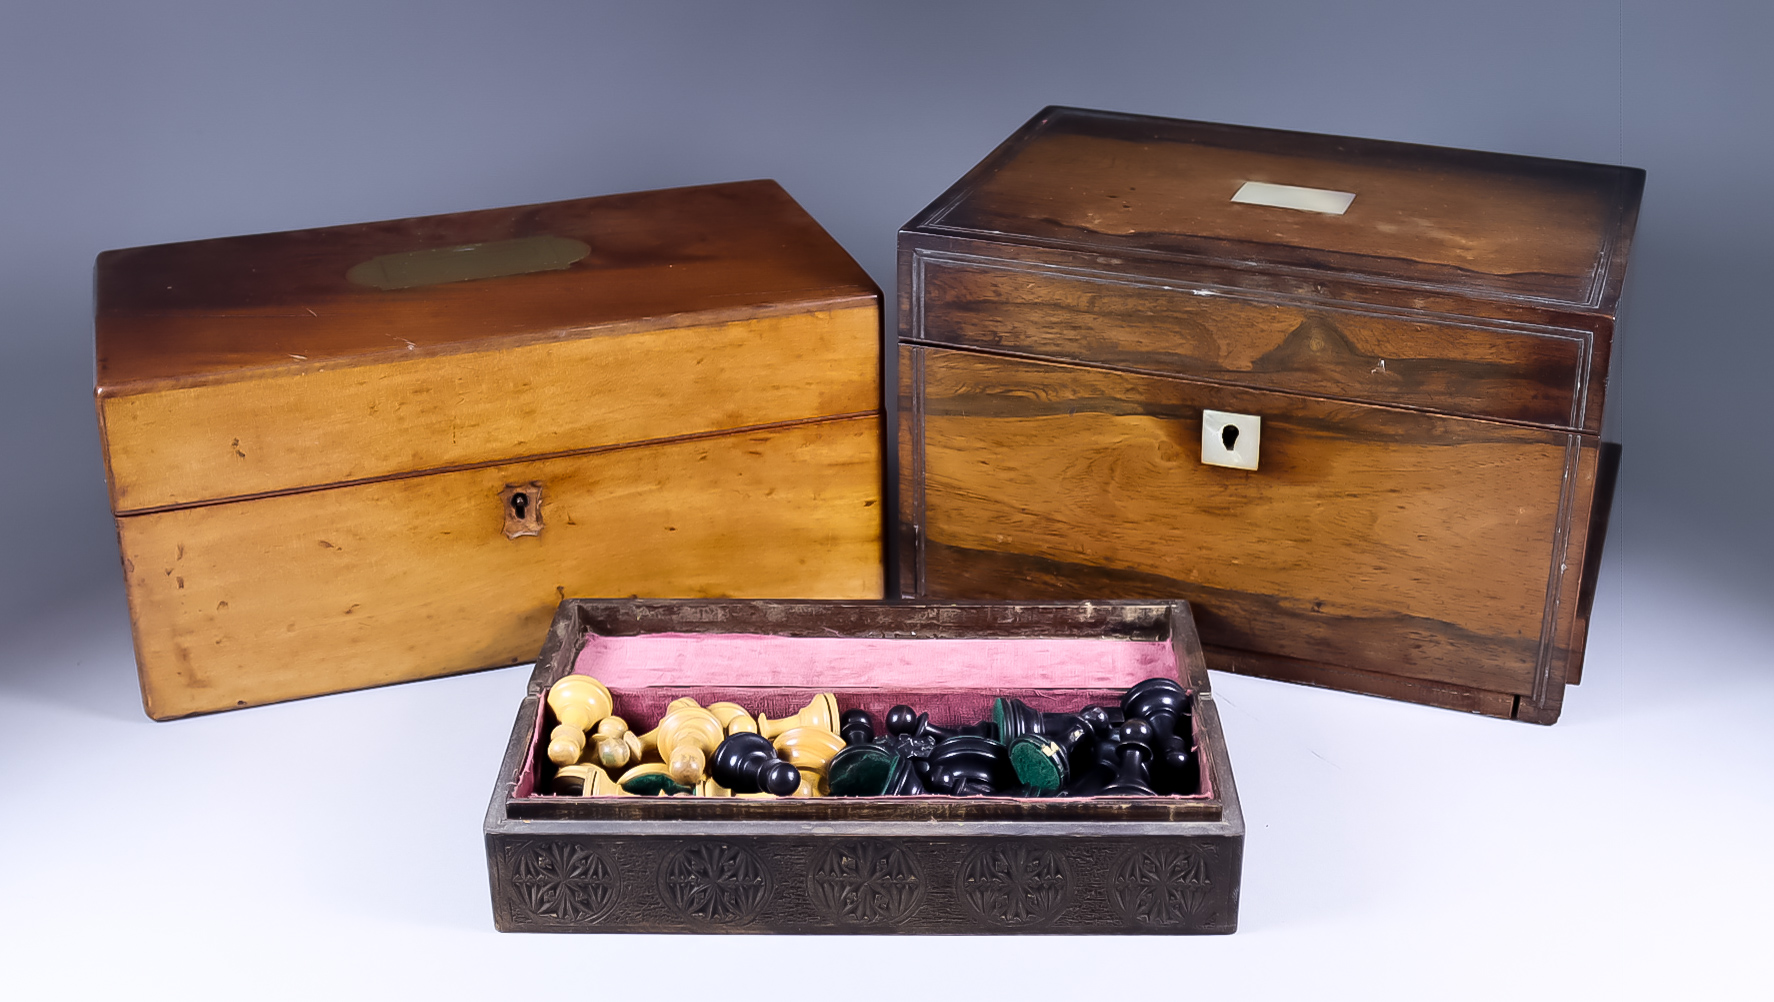 A Rosewood Rectangular Jewellery Box, Victorian, a Mahogany Rectangular Box, and a Chess Set, the